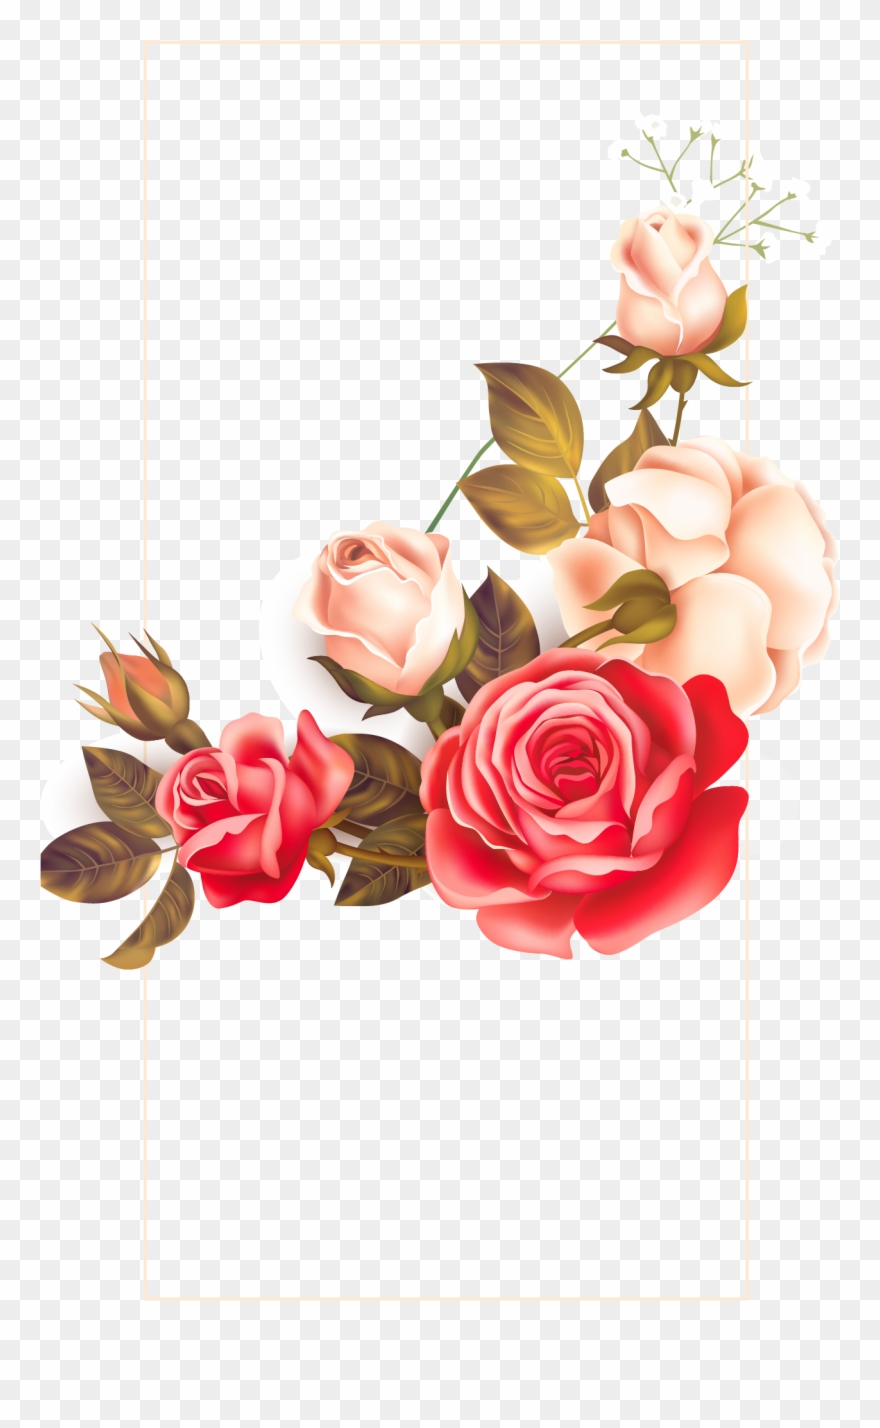 Rose floral border clipart png free library Background Floral Vintage Clipart Images Gallery For - Rose ... png free library